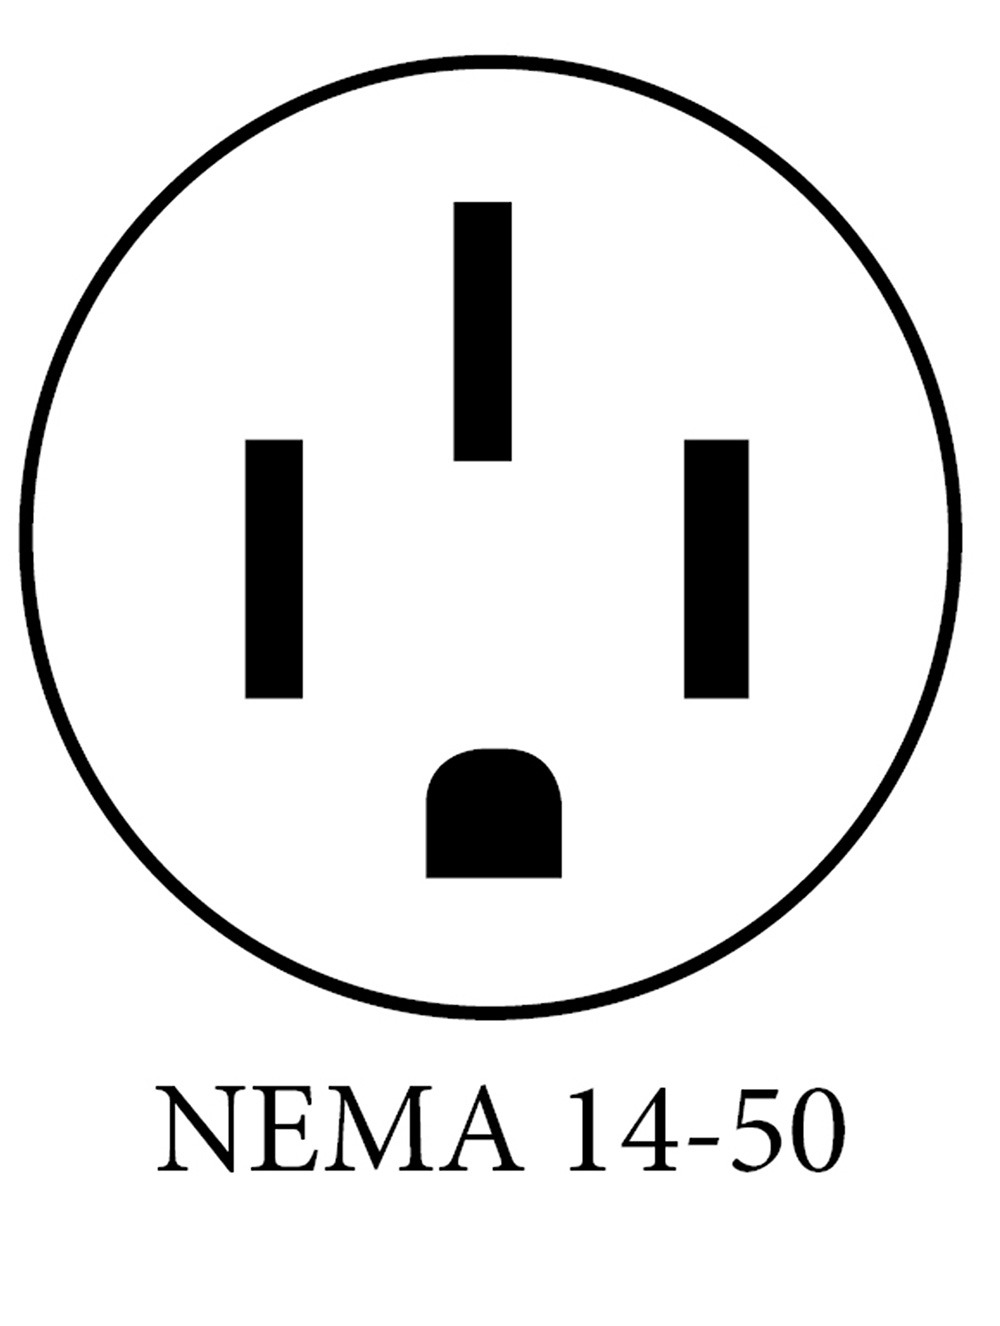 NEMA 14 50 PLUG DIAGRAM w what plugs are available on ev charging stations? nema 10-50r wiring diagram at crackthecode.co